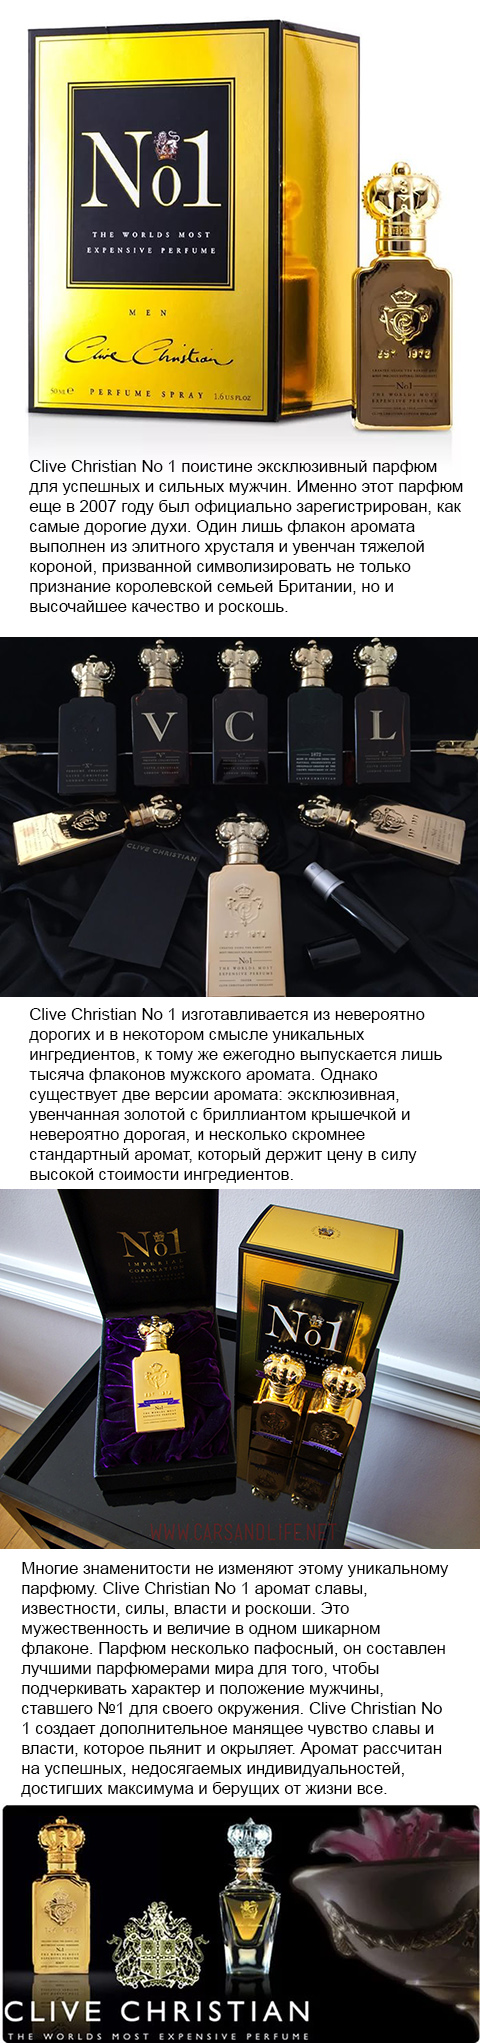 Clive Christian Perfume 01